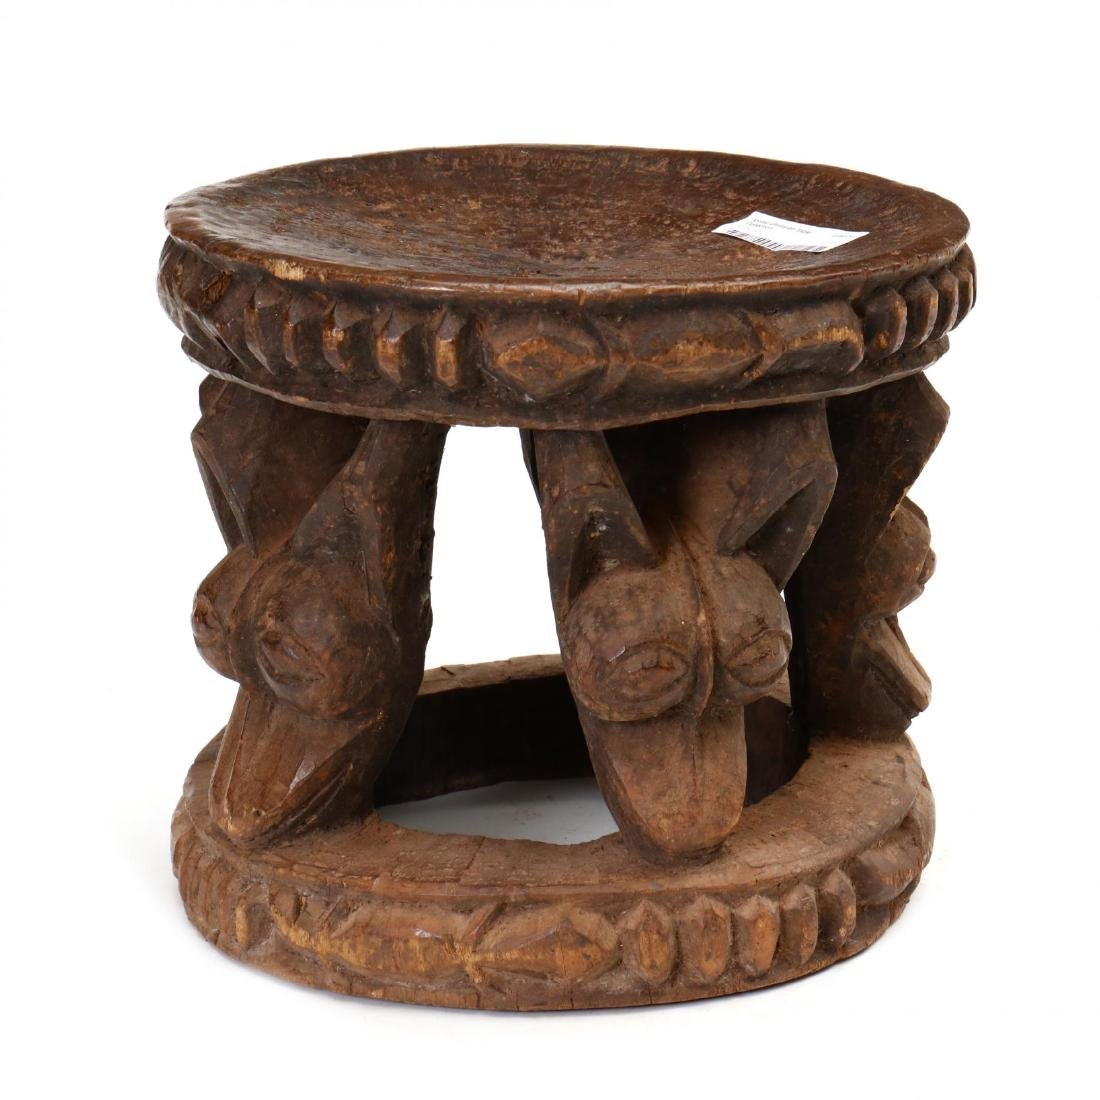 African Carved Wood Iconic Utilitarian Table with - 2